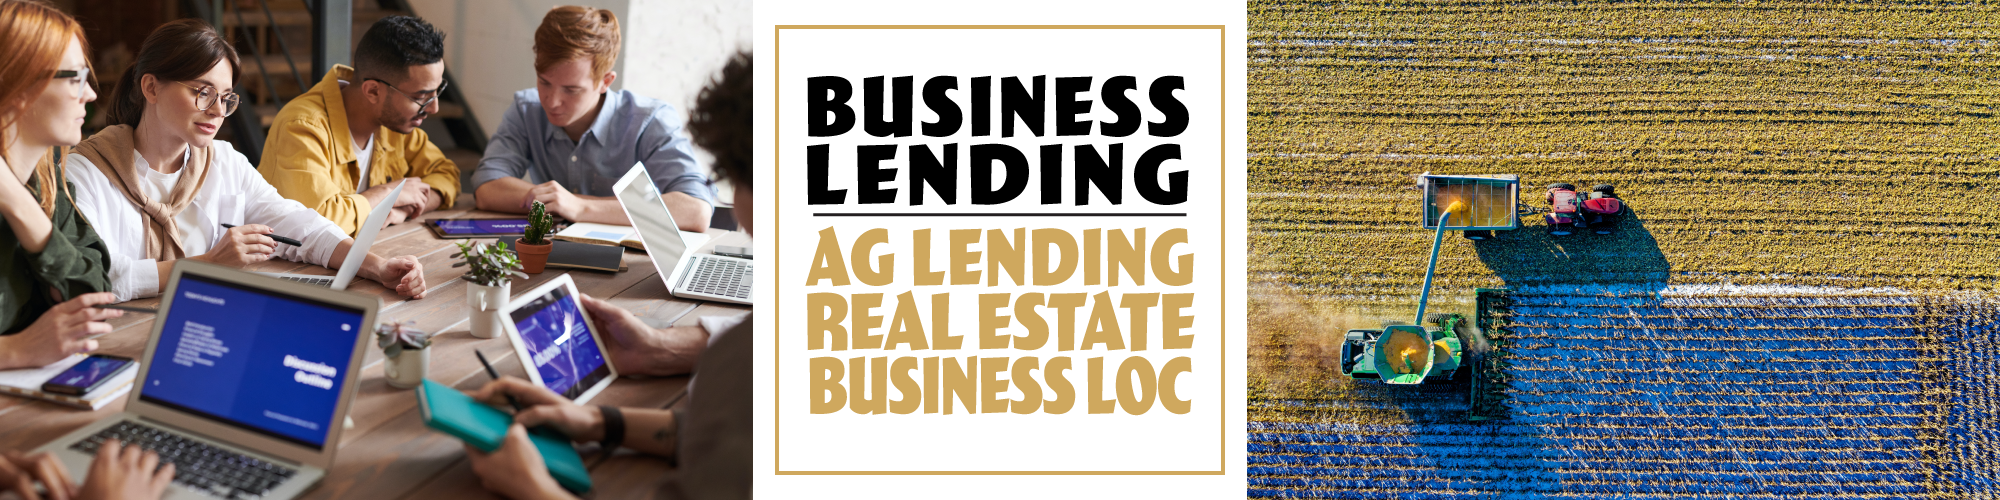 Business lending options include ag lending, business loc, real estate and much more!